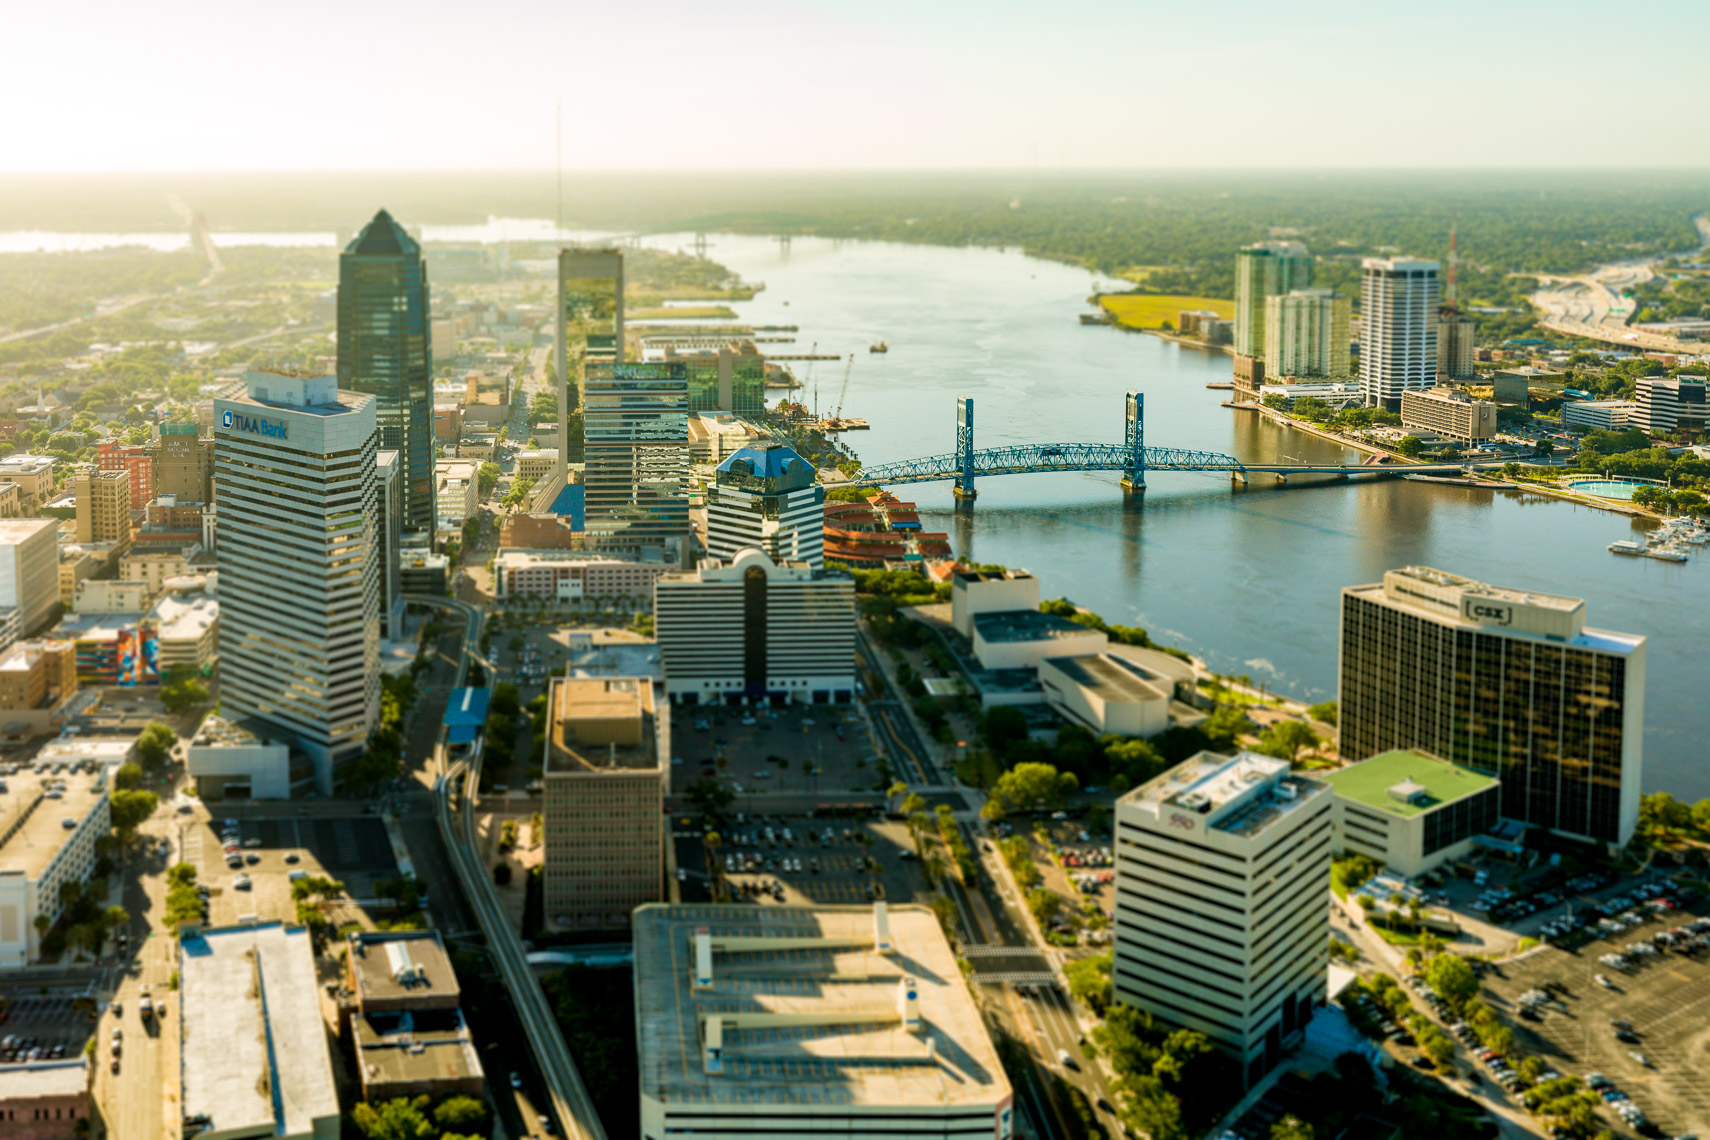 Aerial view of downtown Jacksonville and the St Johns River